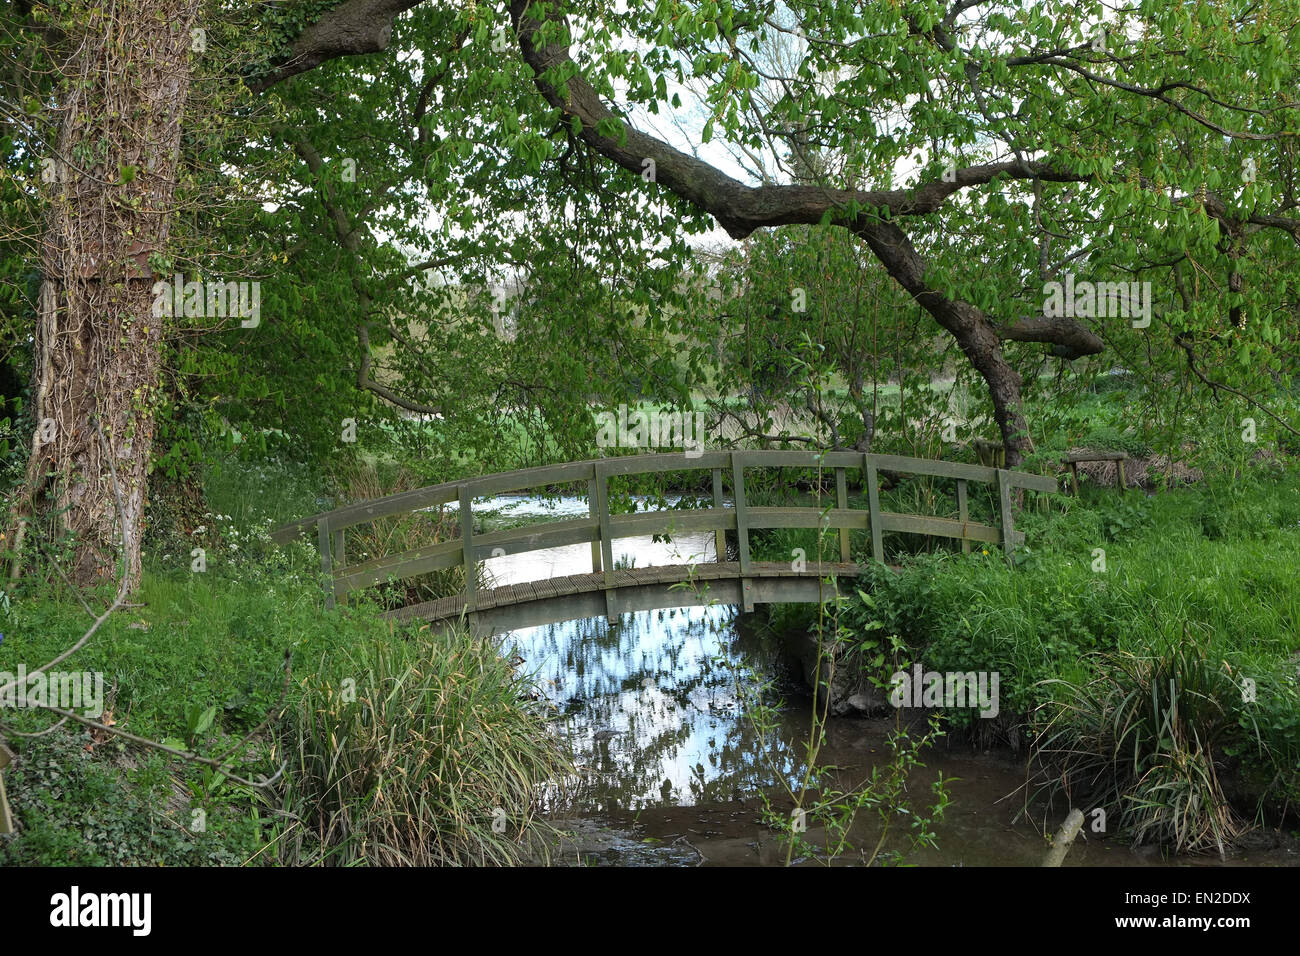 rustic wooden bridge in a large garden neat cambridge 25th april 2015 - Large Garden 2015